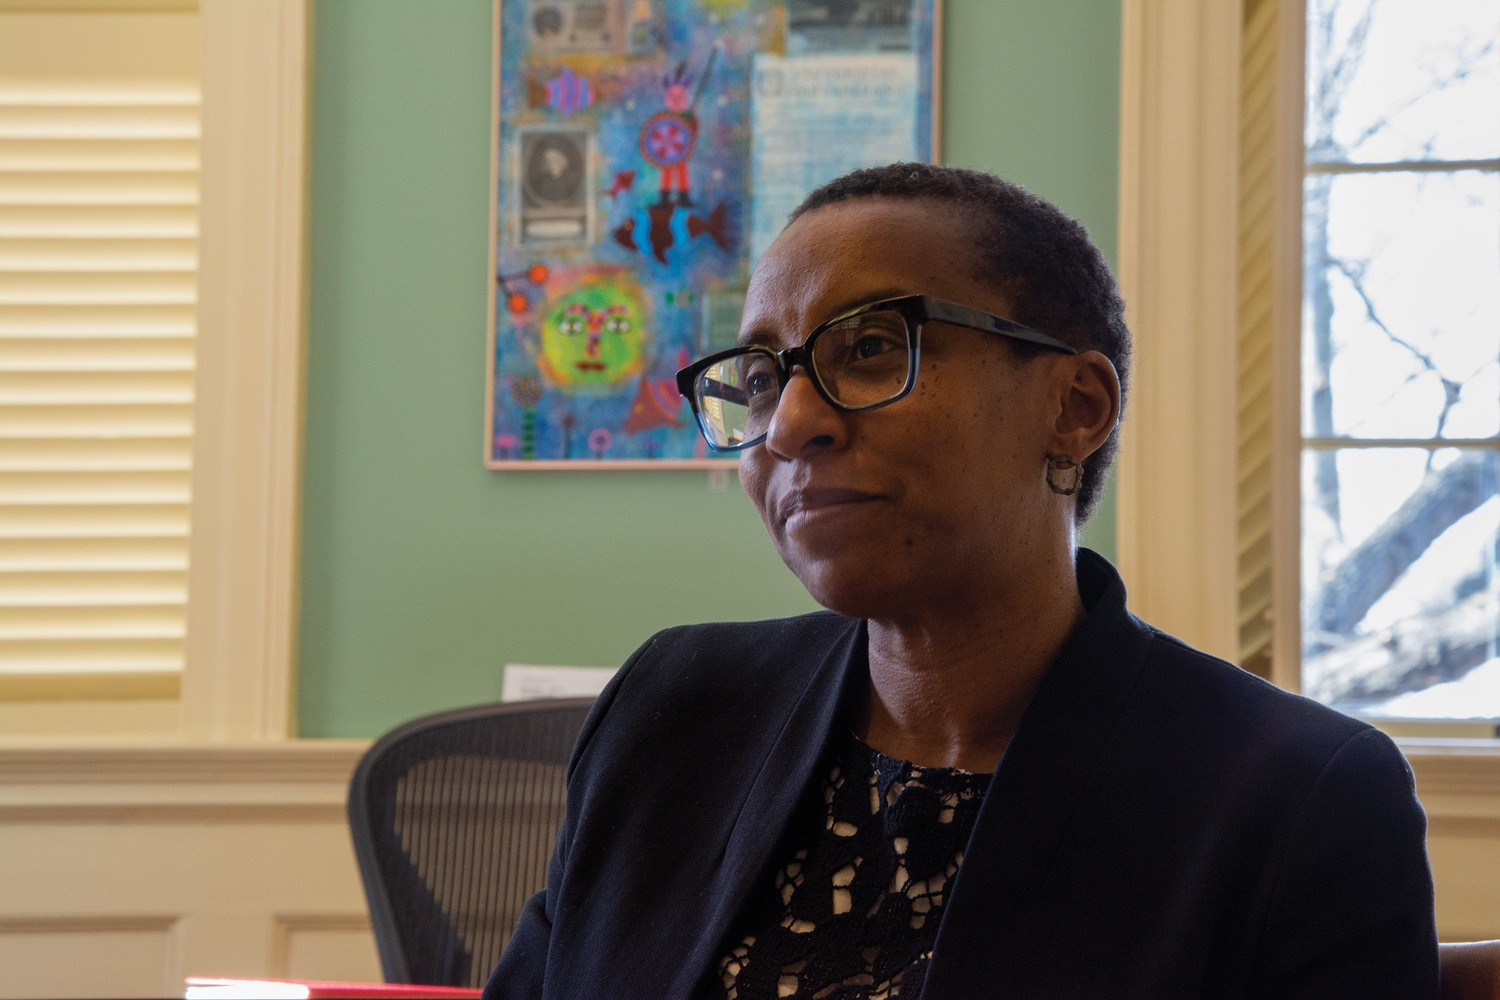 Dean of the Faculty of Arts and Sciences Claudine Gay discussed an ongoing search for faculty who specialize in ethnic studies.